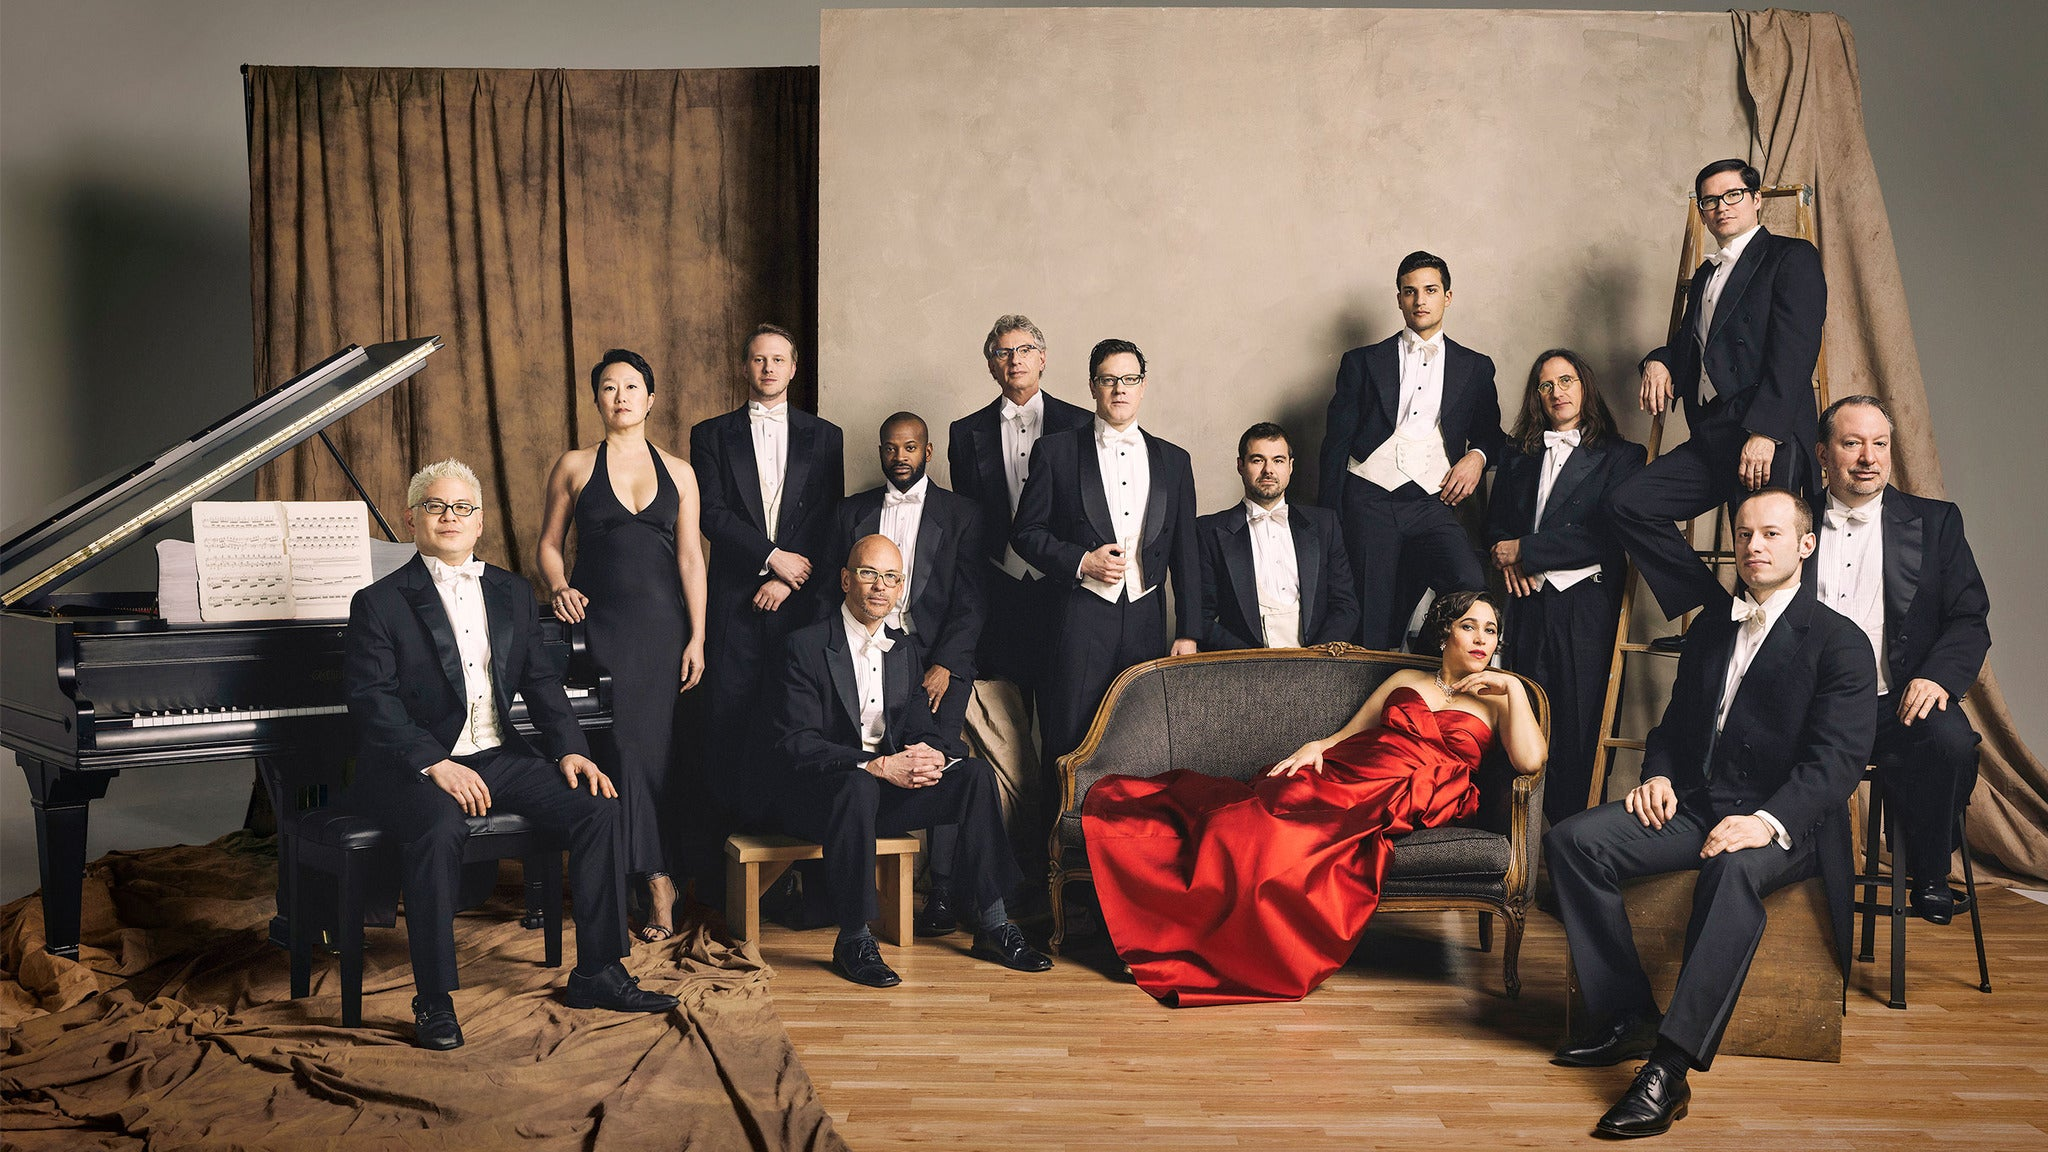 Pink Martini at Neal S Blaisdell Concert Hall